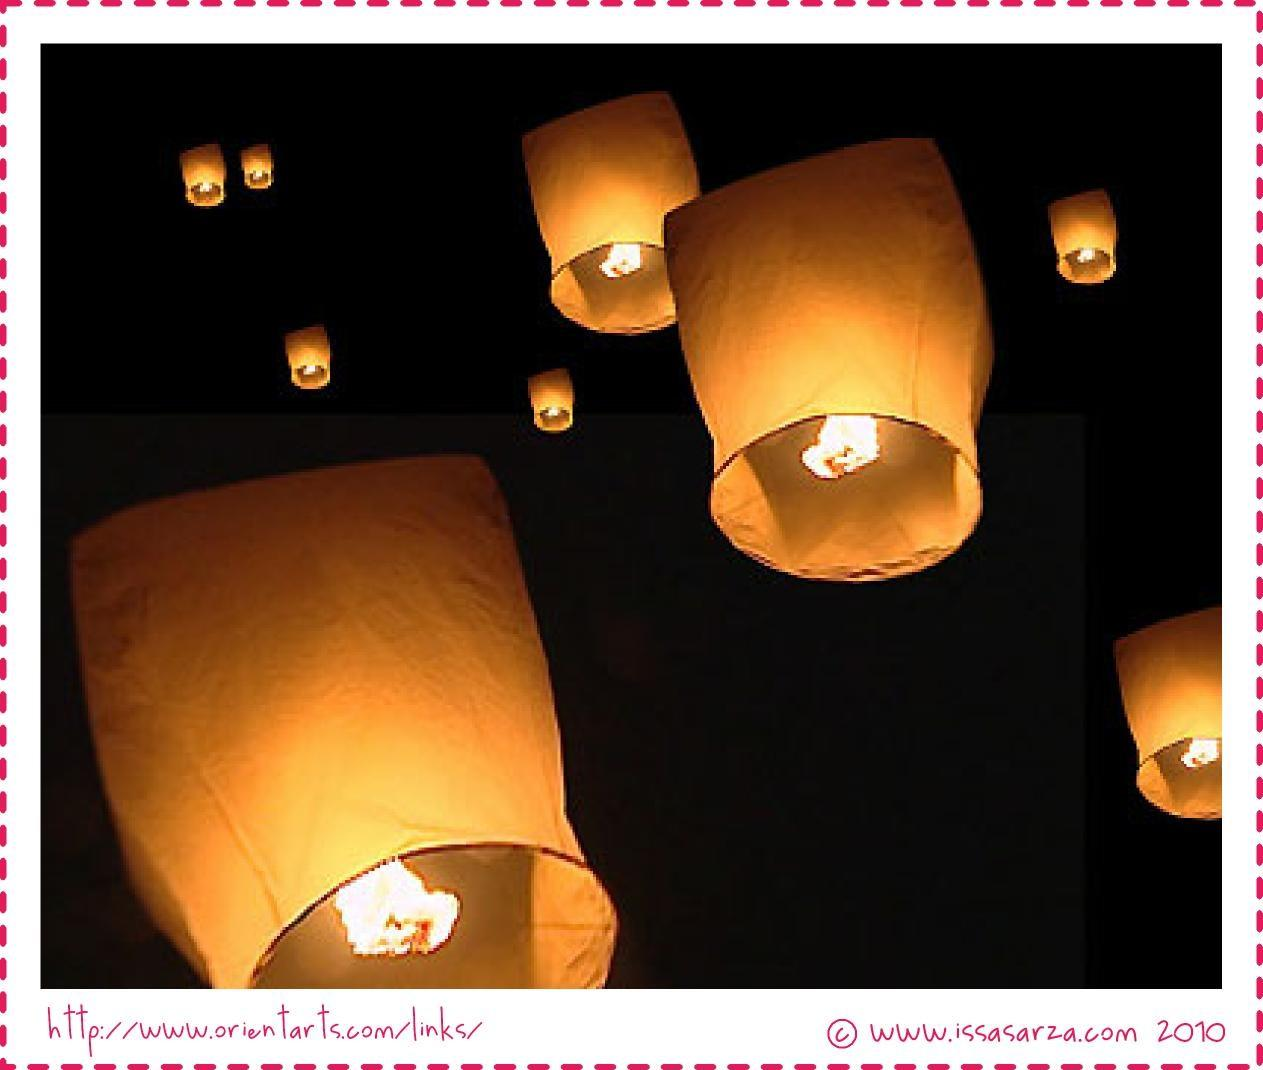 Innermost Thoughts Floating Sky Lantern Just